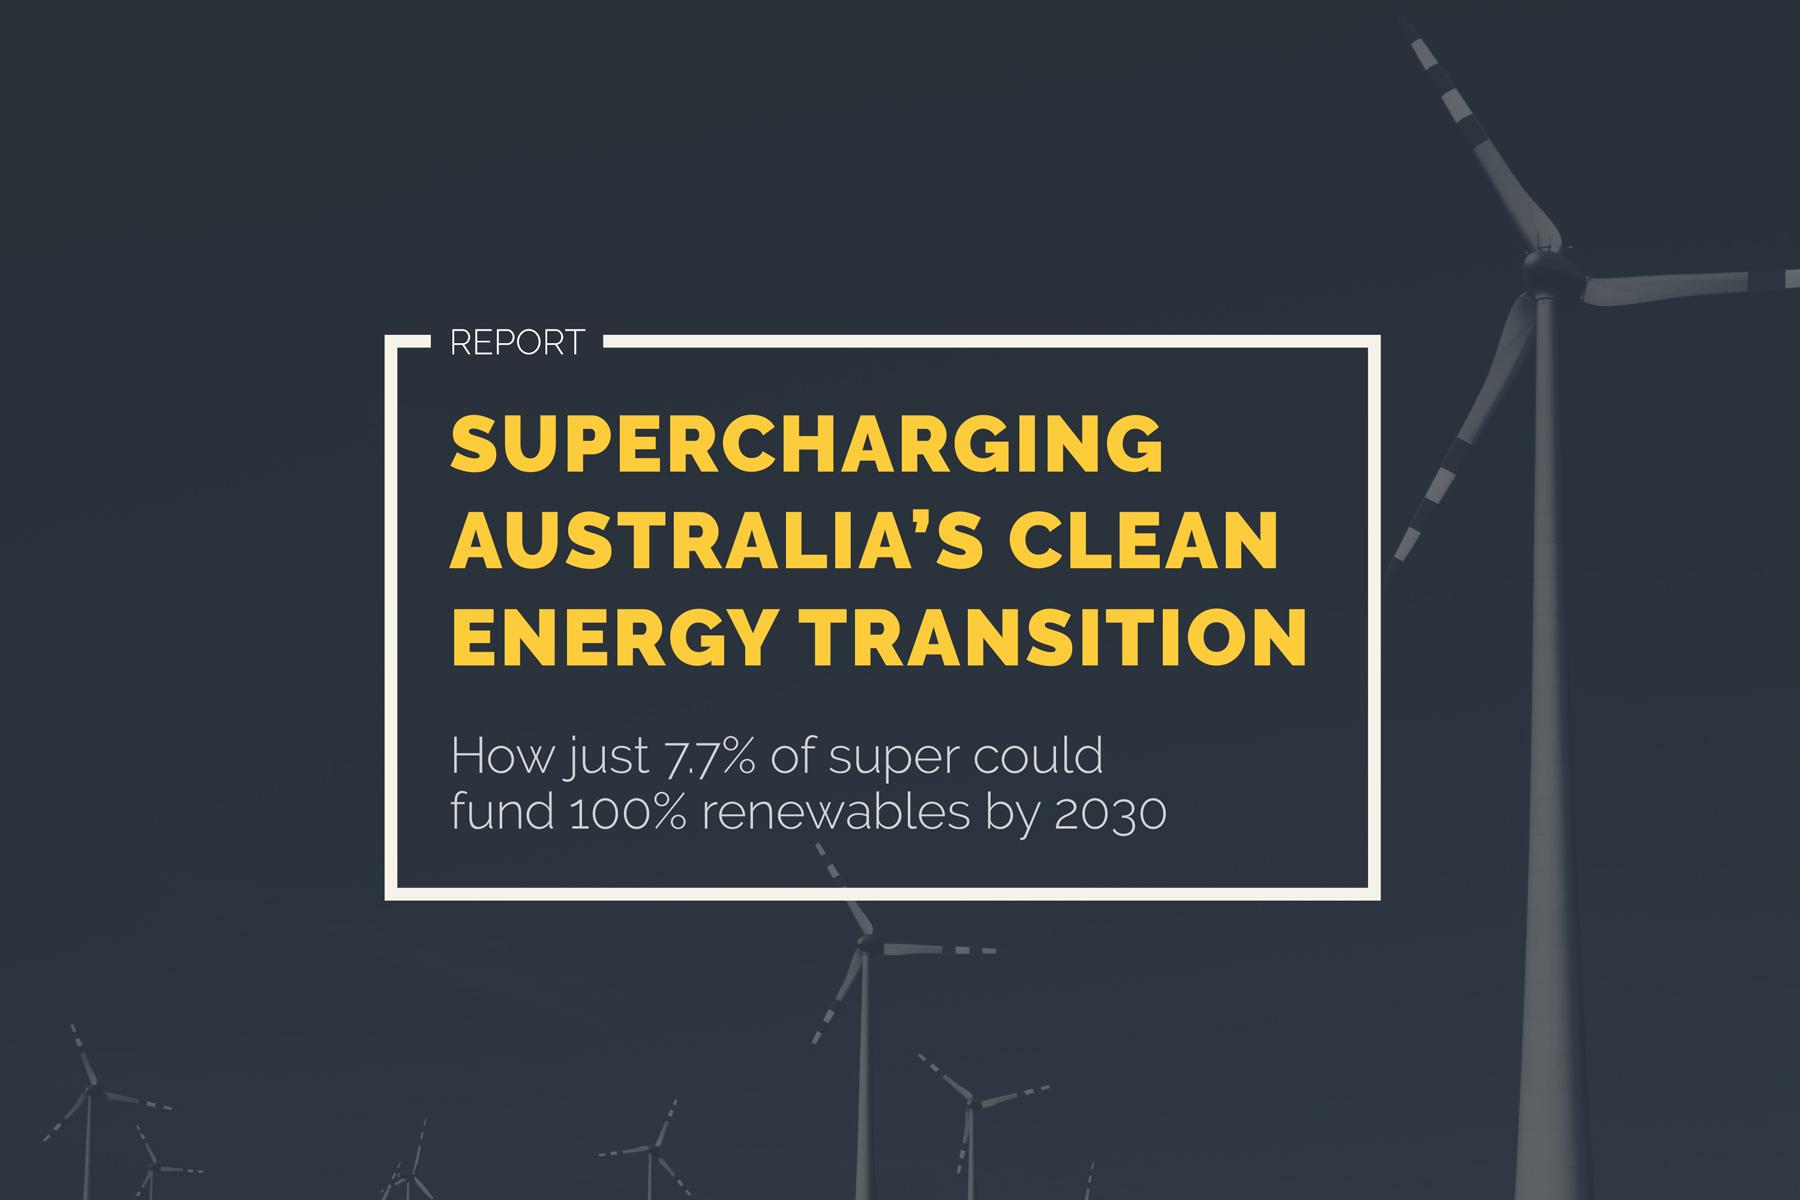 How just 7.7 percent of superannuation could fund Australia's transition to 100 percent renewable energy by 2030